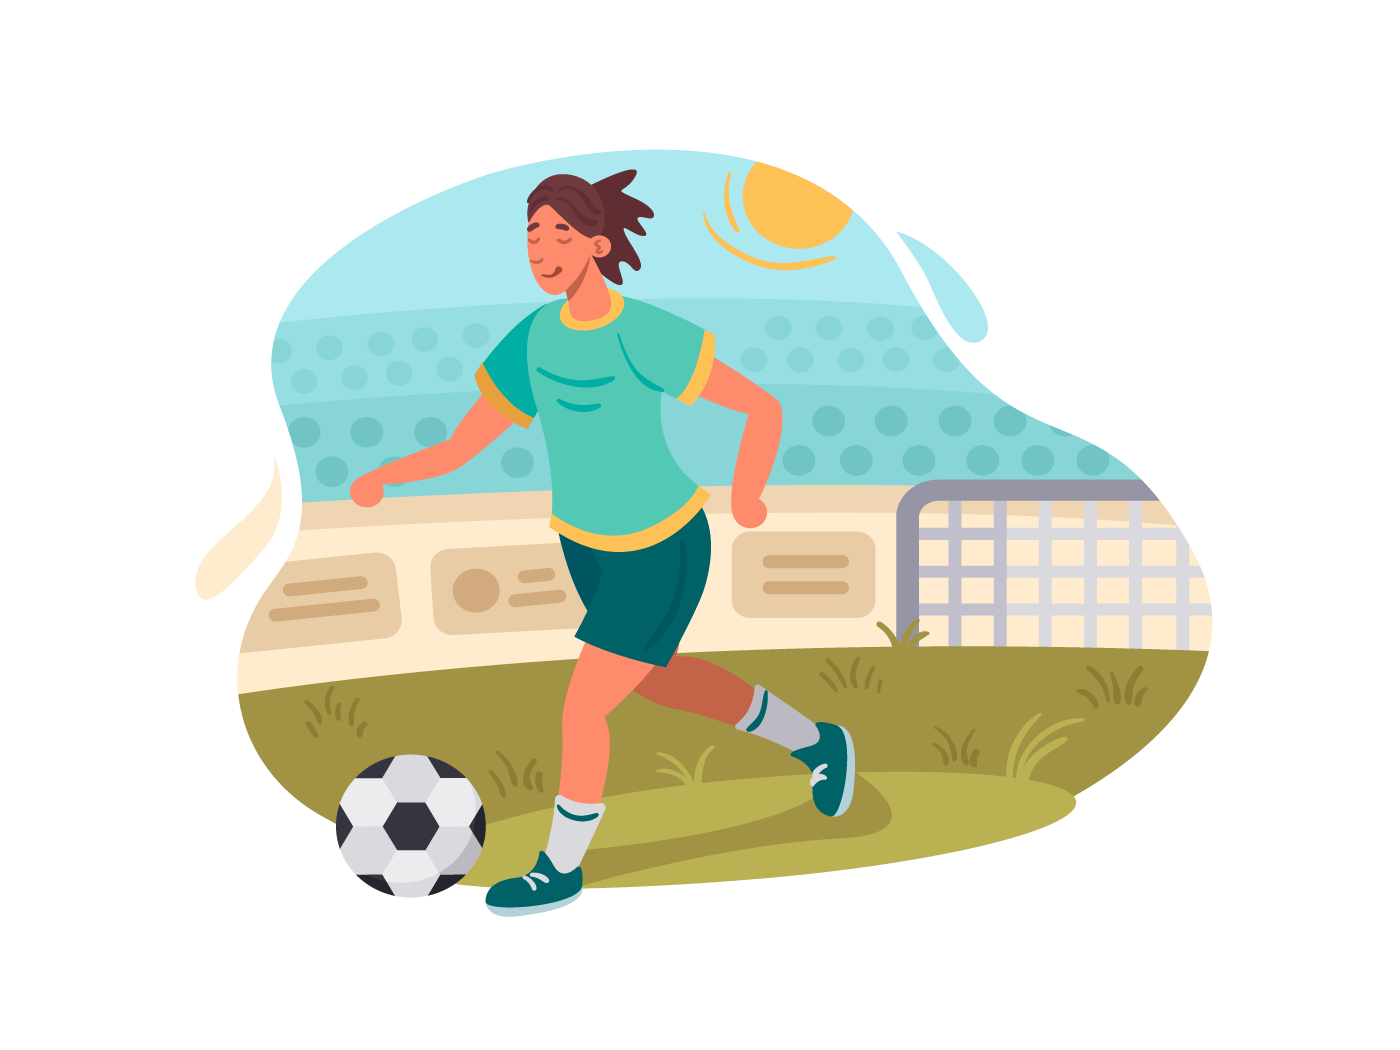 Soccer player plays football illustration